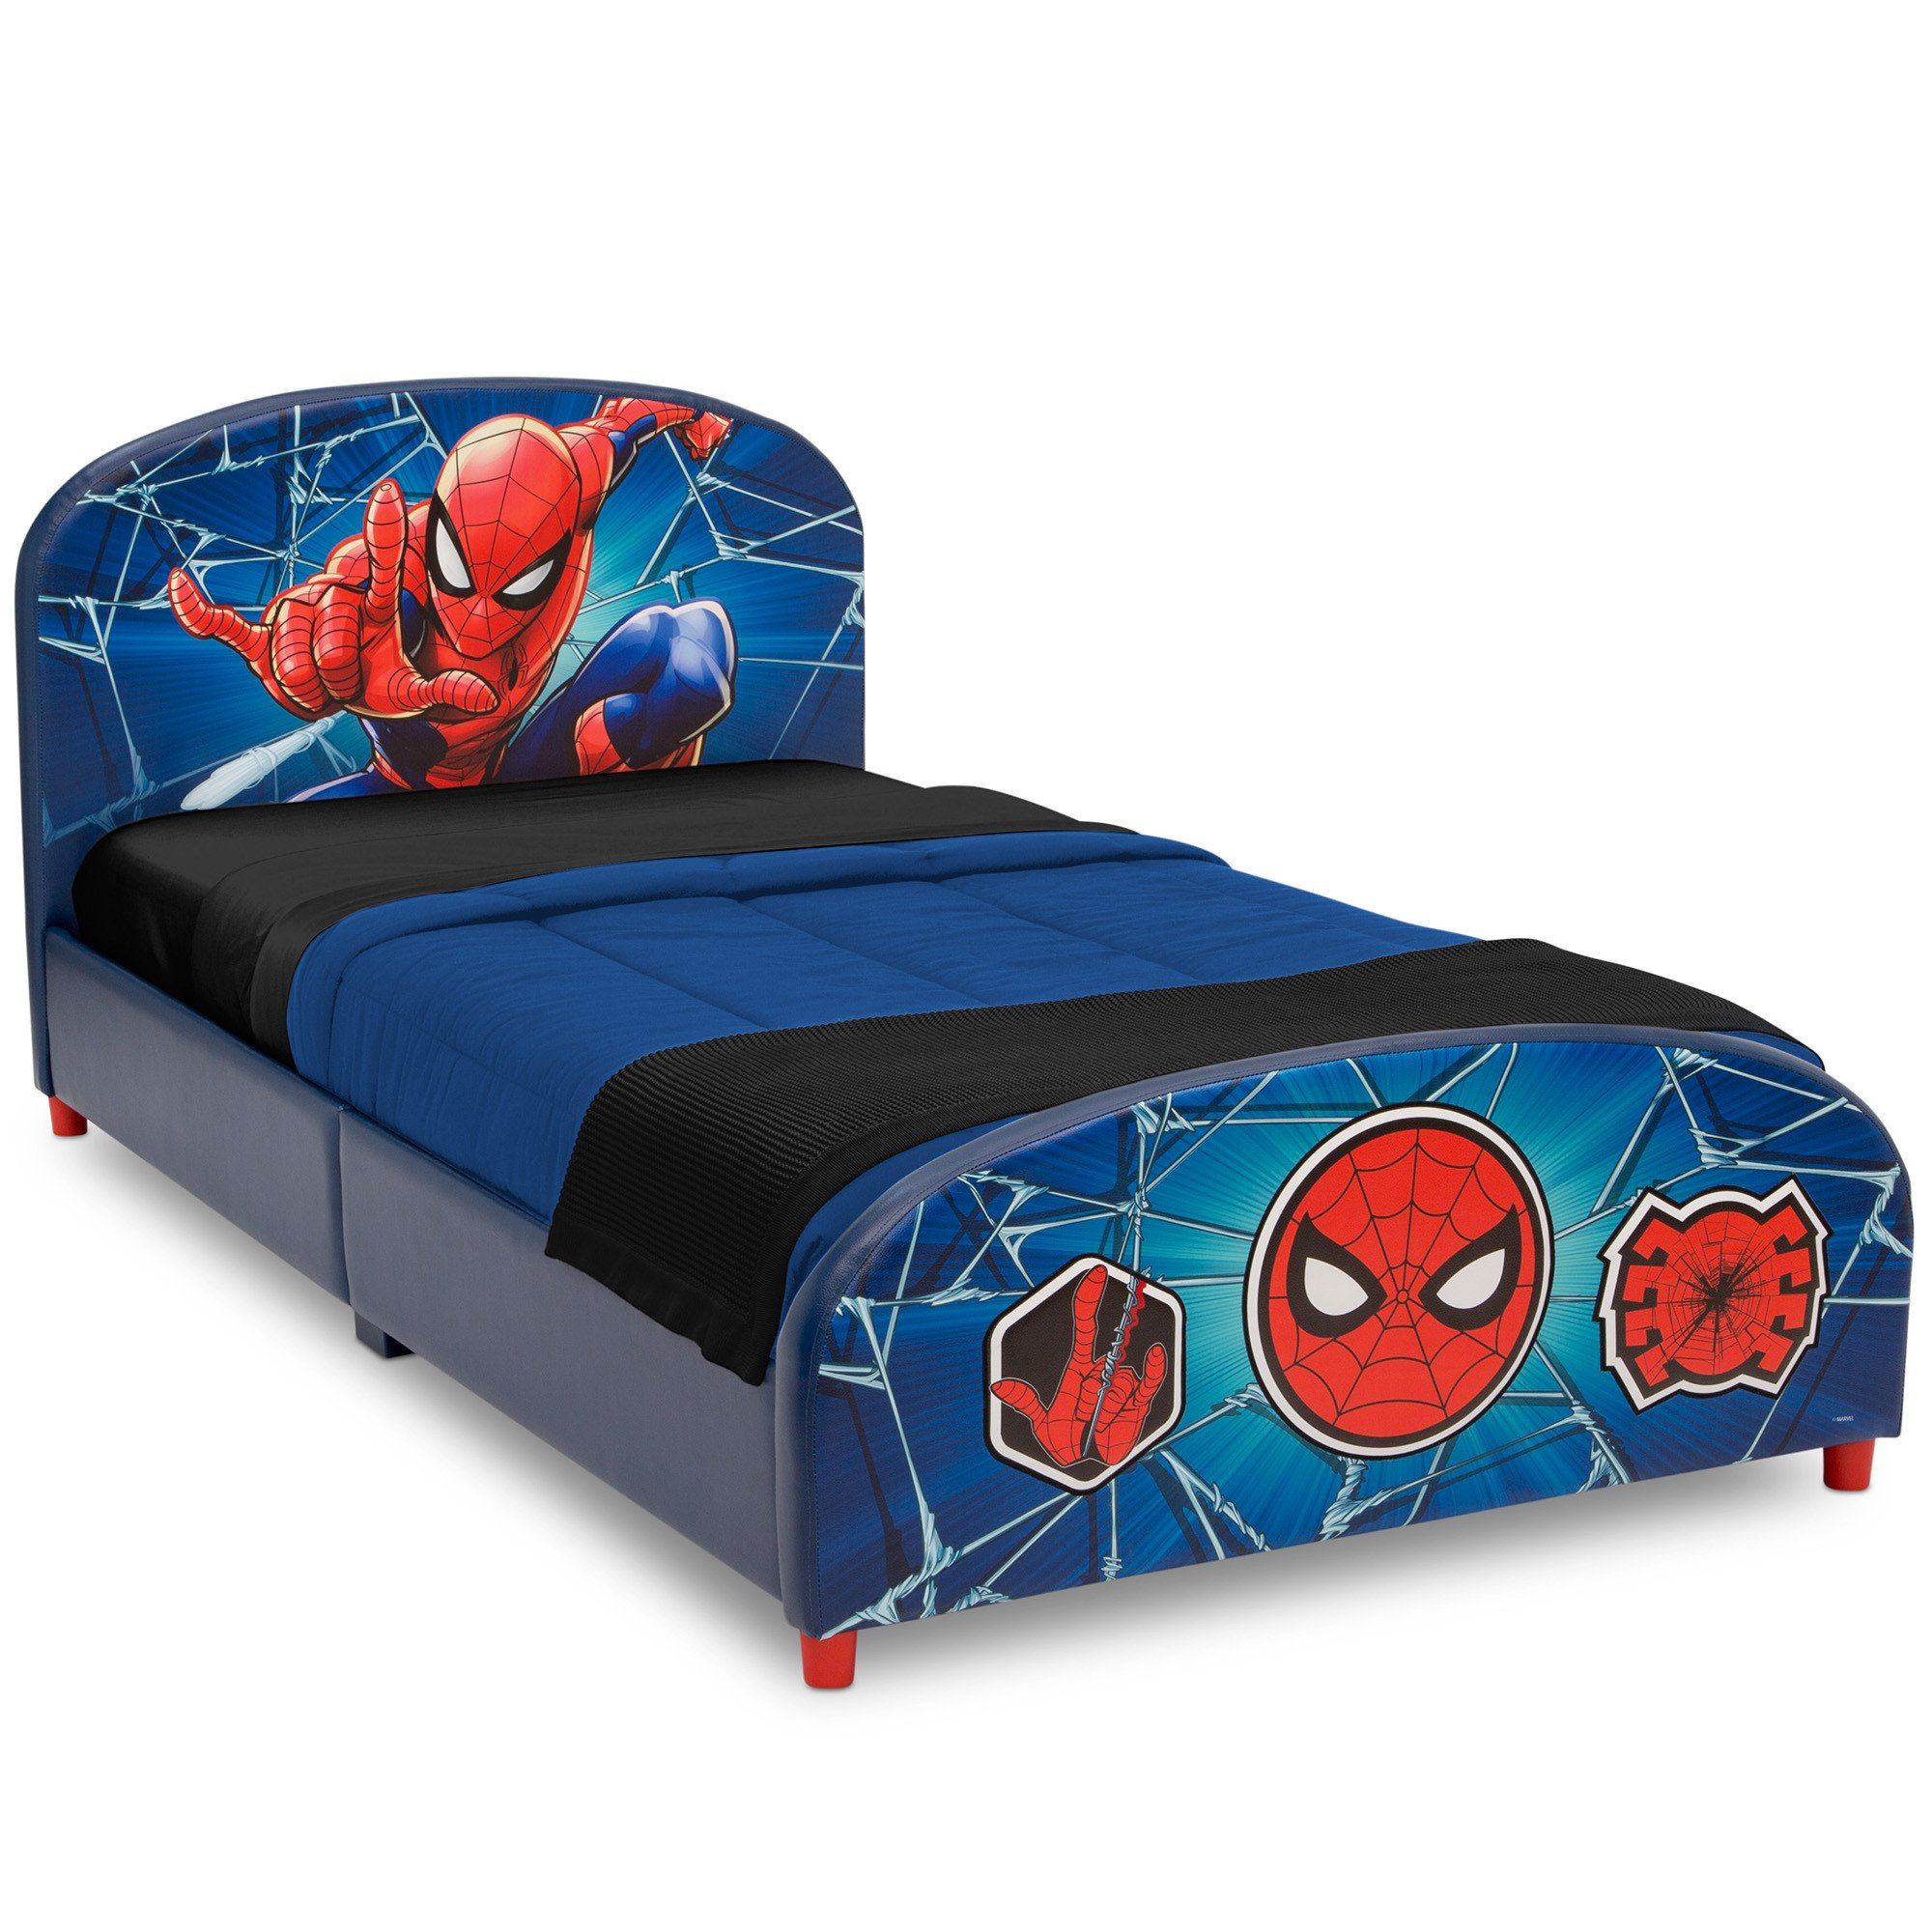 Paw Patrol Bedroom Furniture Best Of Delta Children Marvel Spider Man Upholstered Bed Twin Walmart